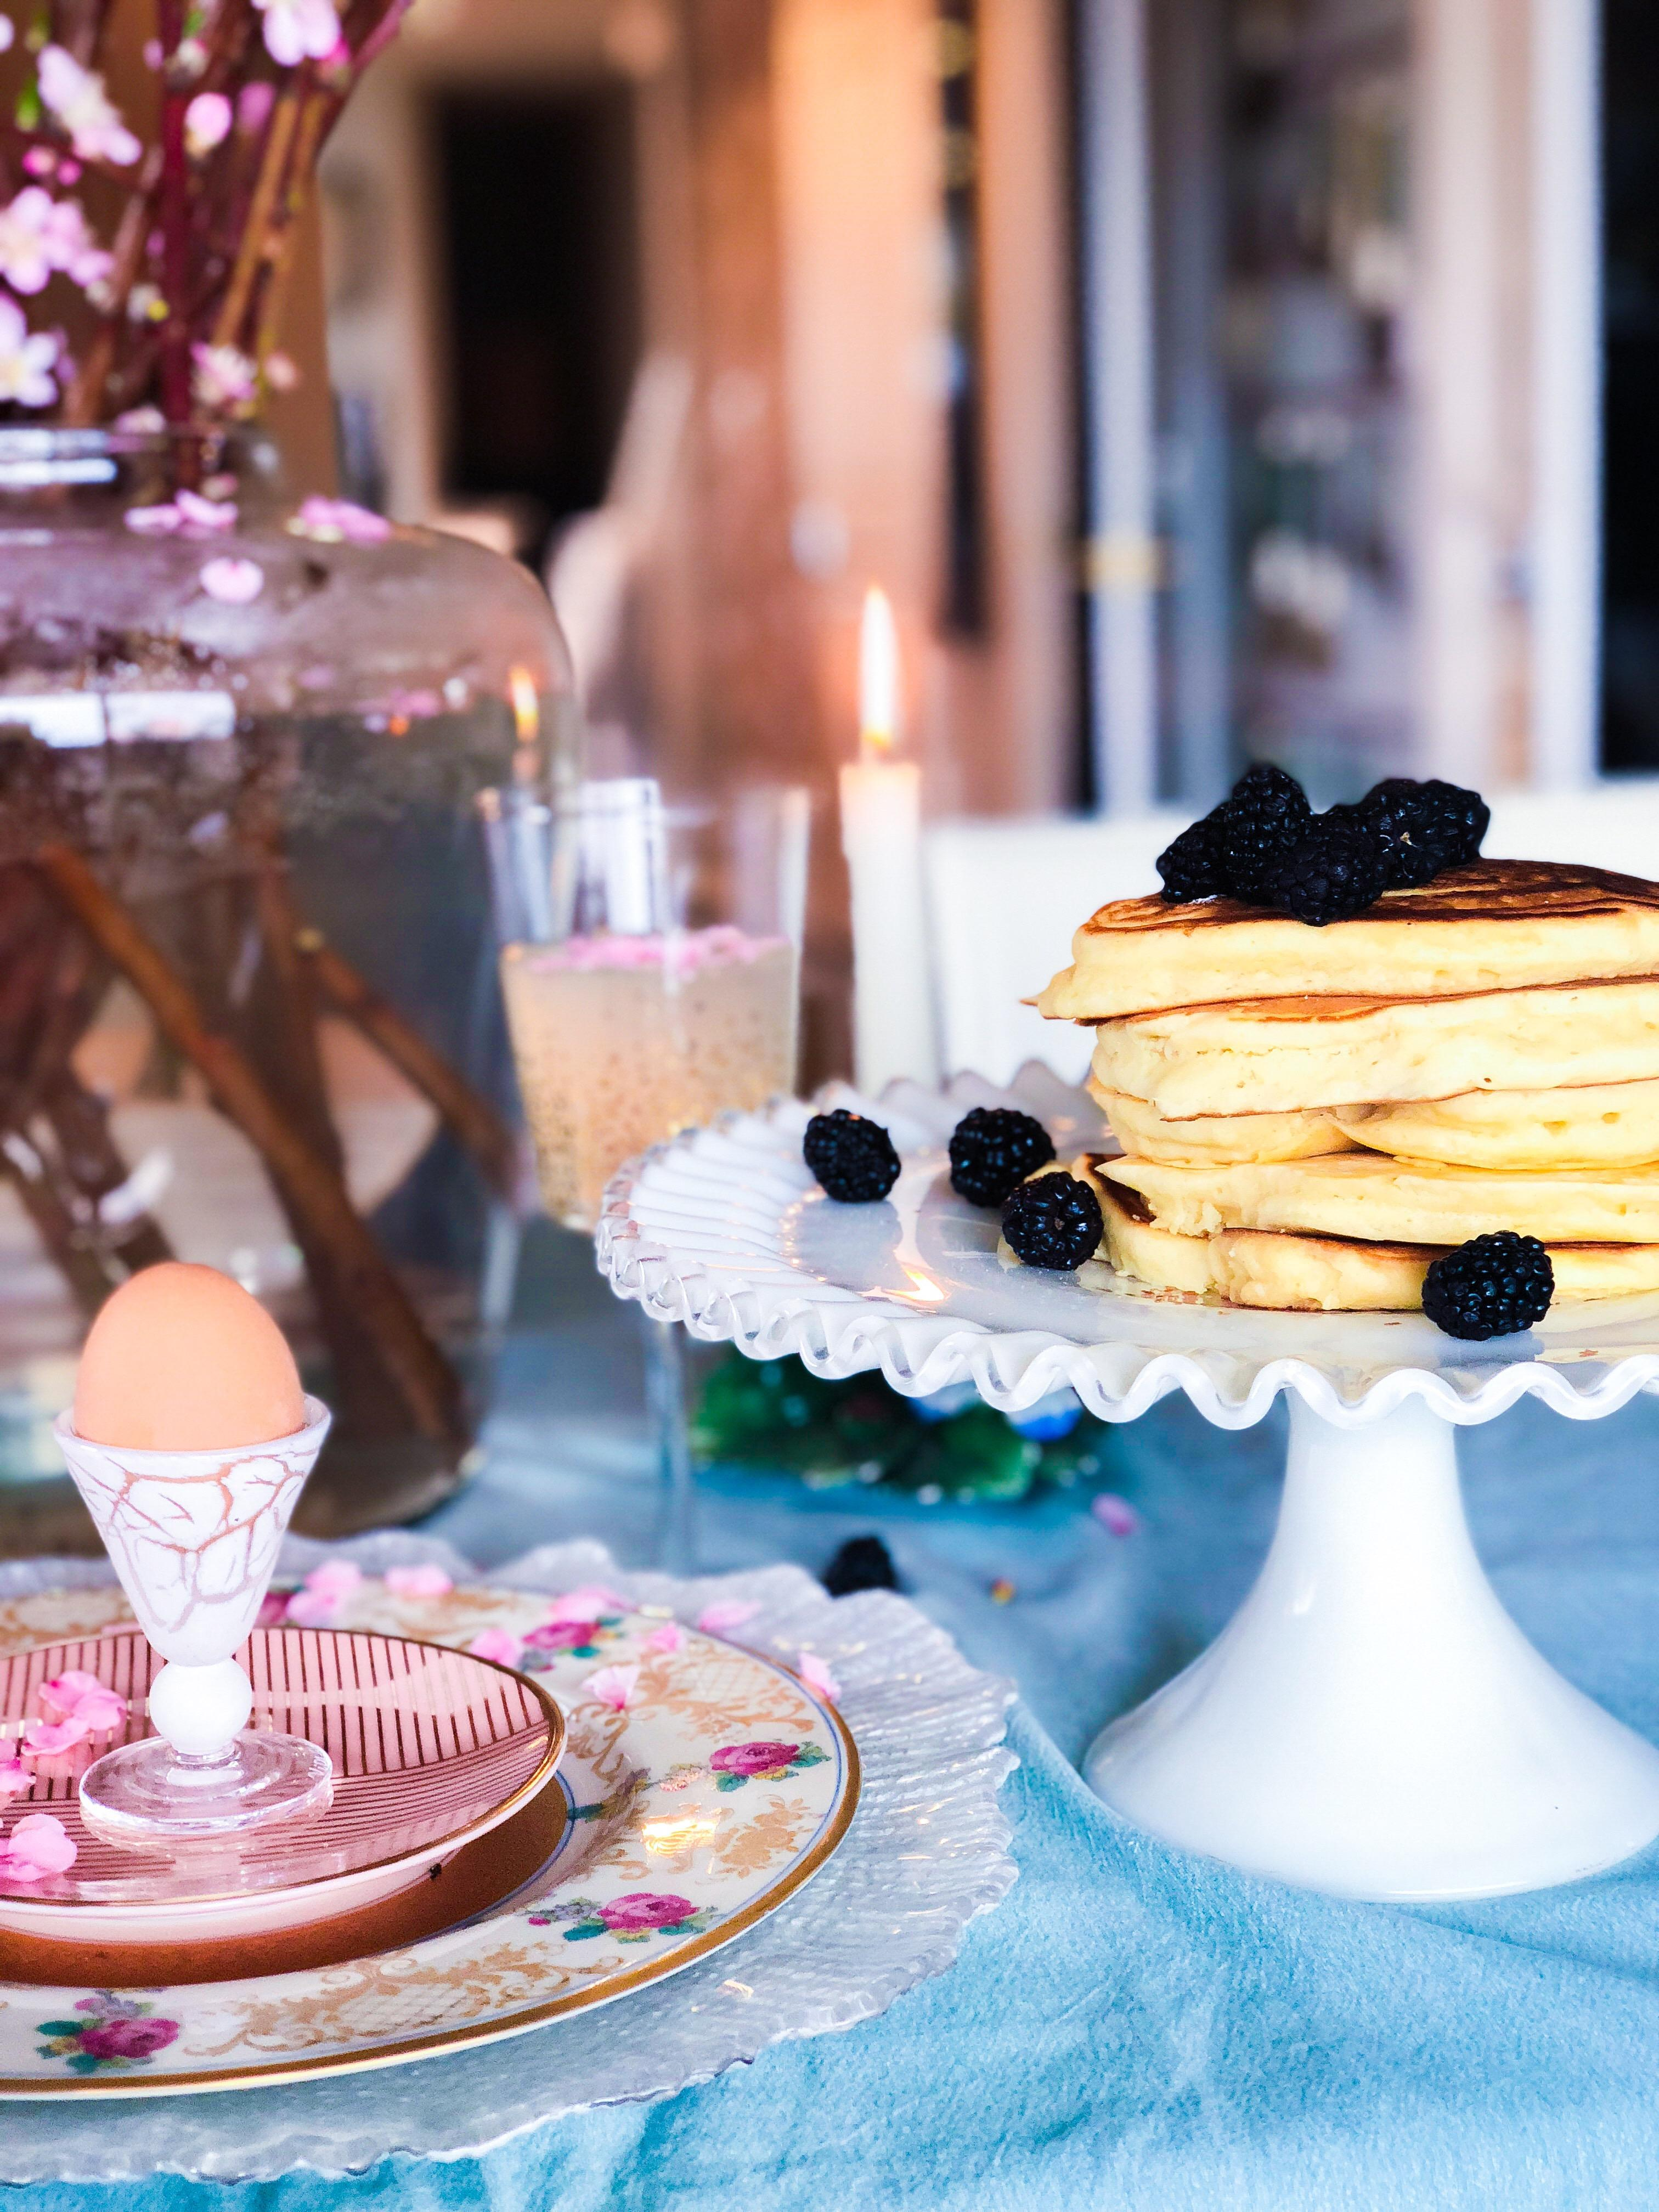 I always make homemade buttermilk pancakes with soft boiled eggs, fresh fruit and bacon -- simple and easy. But you can make whatever you like as the the food takes a back seat. It is really the table decor that elevates this romantic brunch.{ } (Image: Ashley Hafstead)